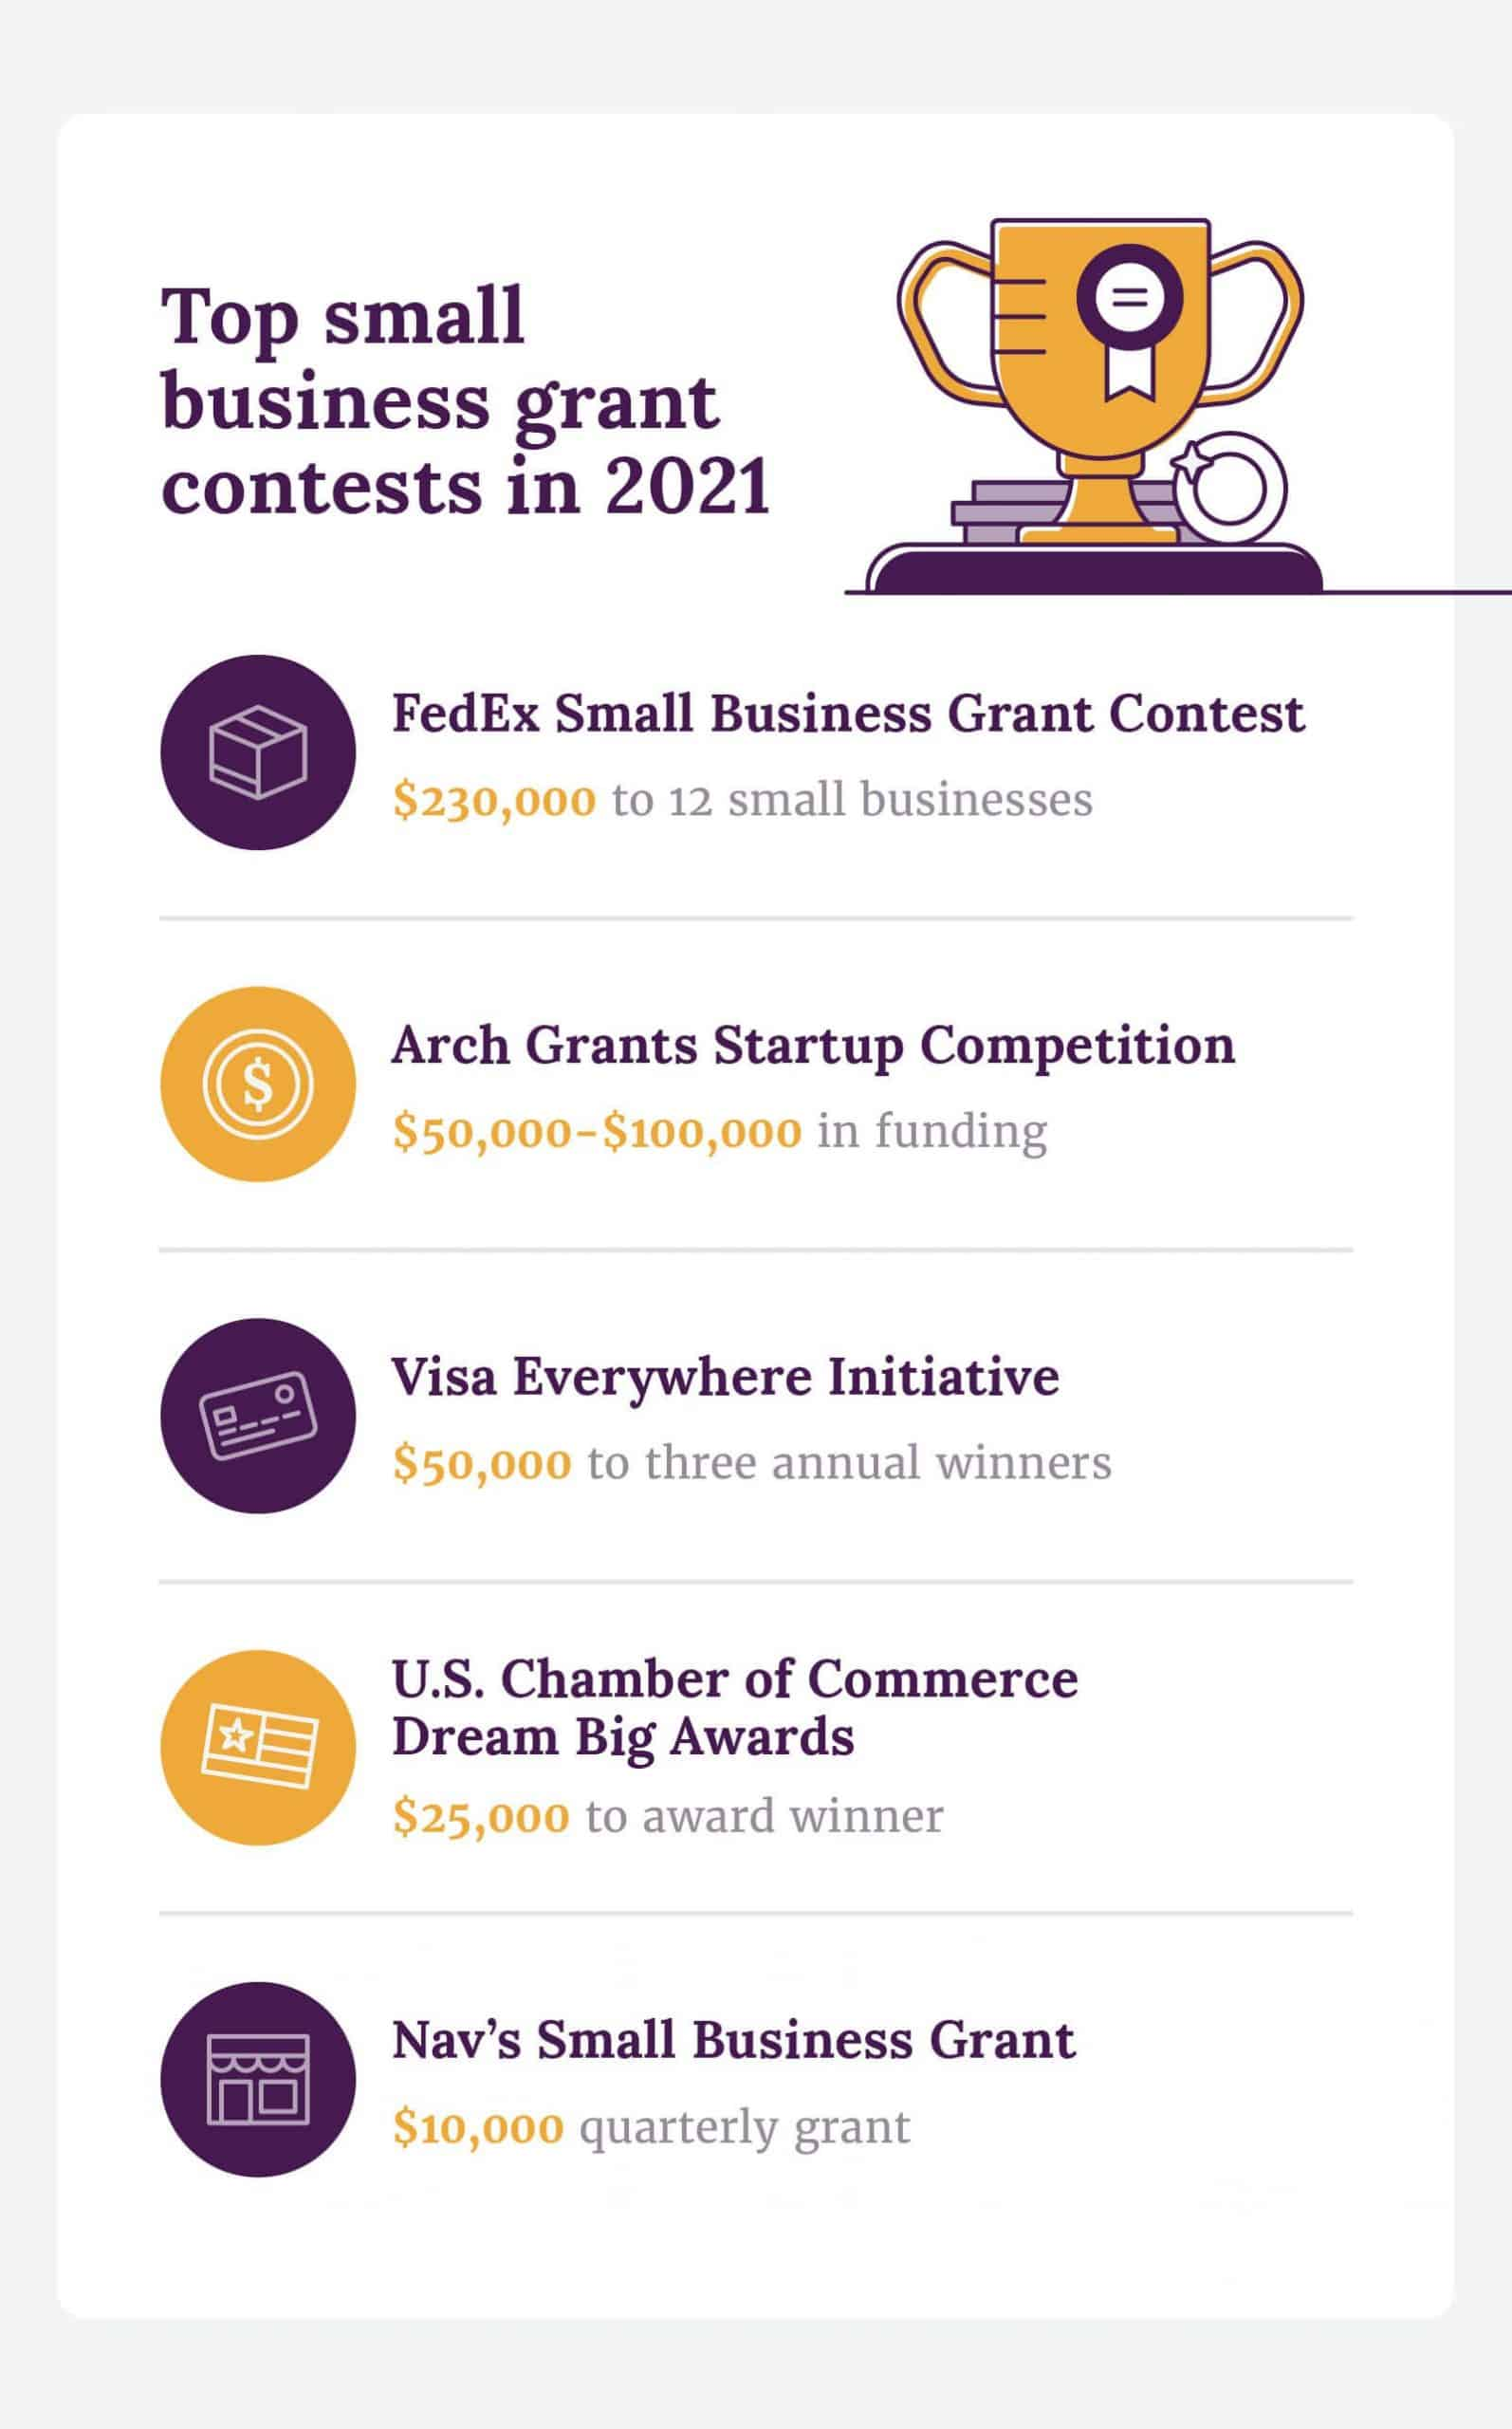 Top small business grant contests in 2021